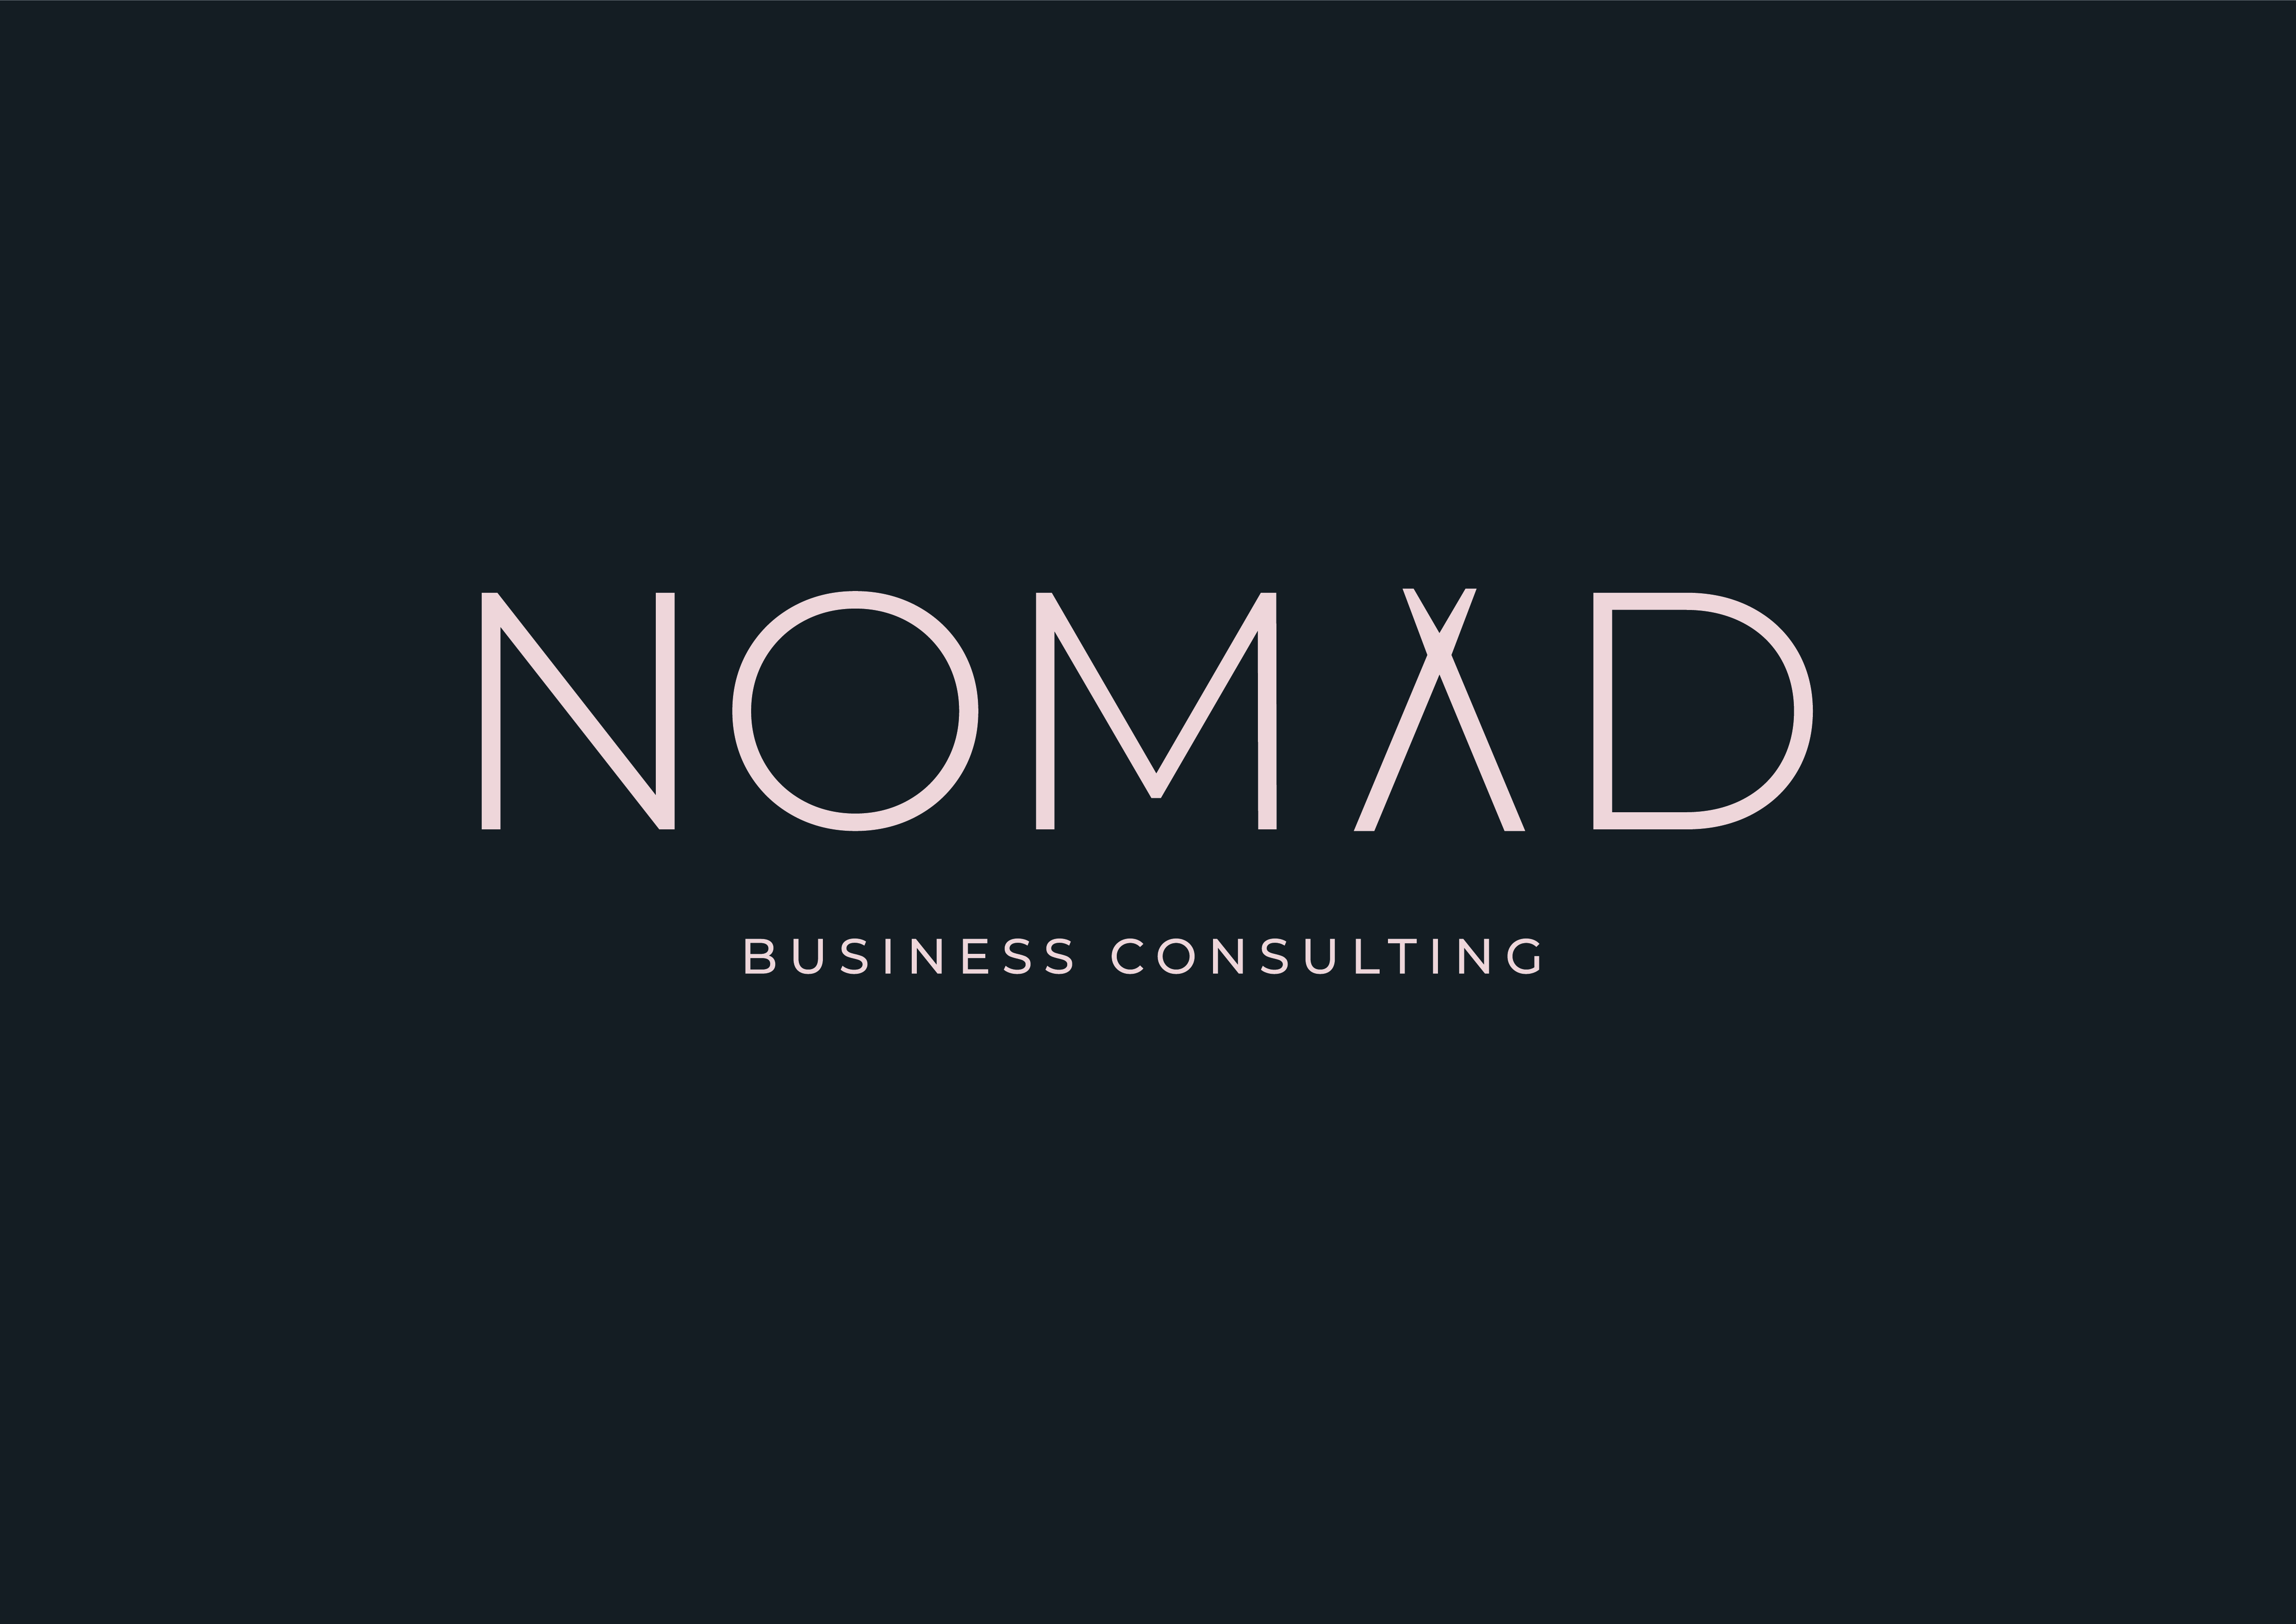 Nomad Consulting Brand Identity